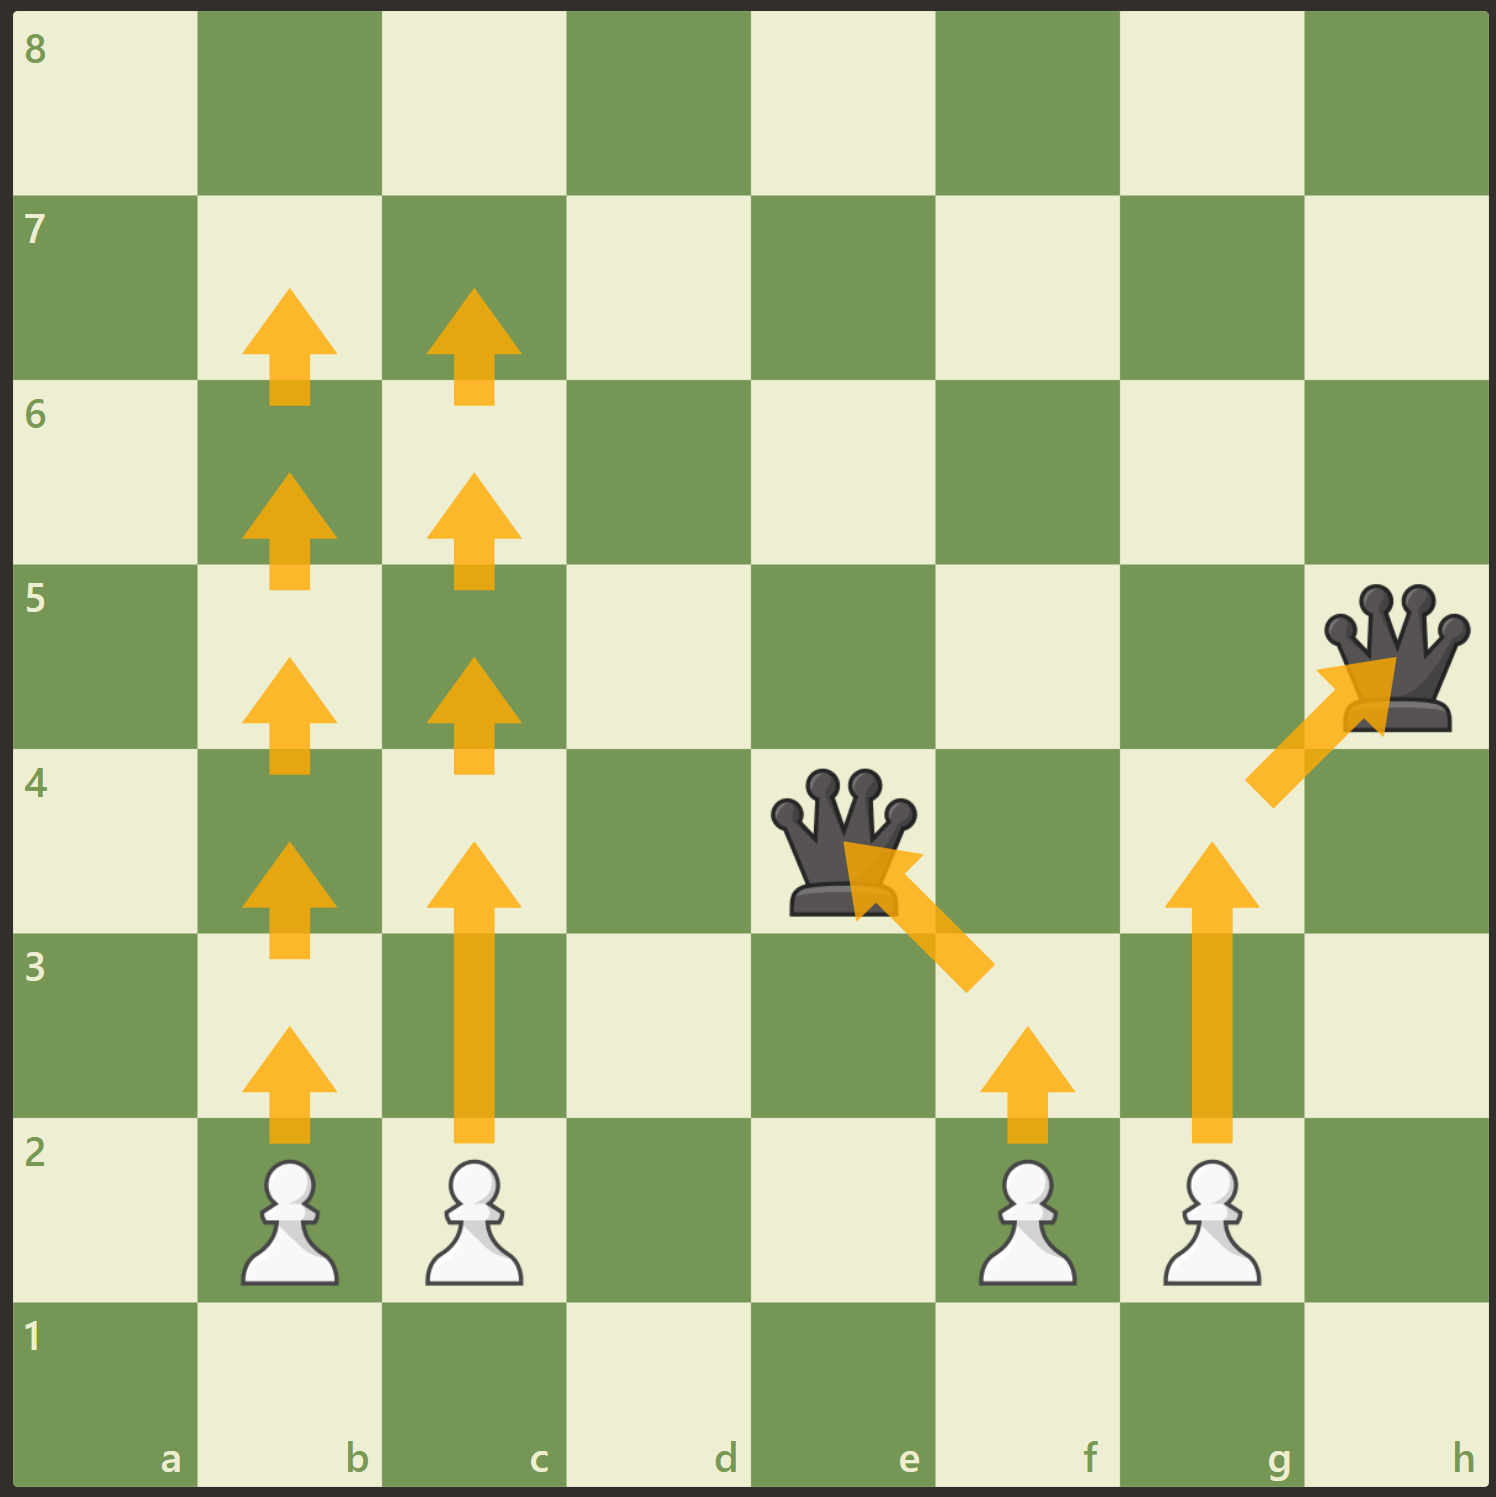 A chessboard showing various pawn moves, explained in image caption.